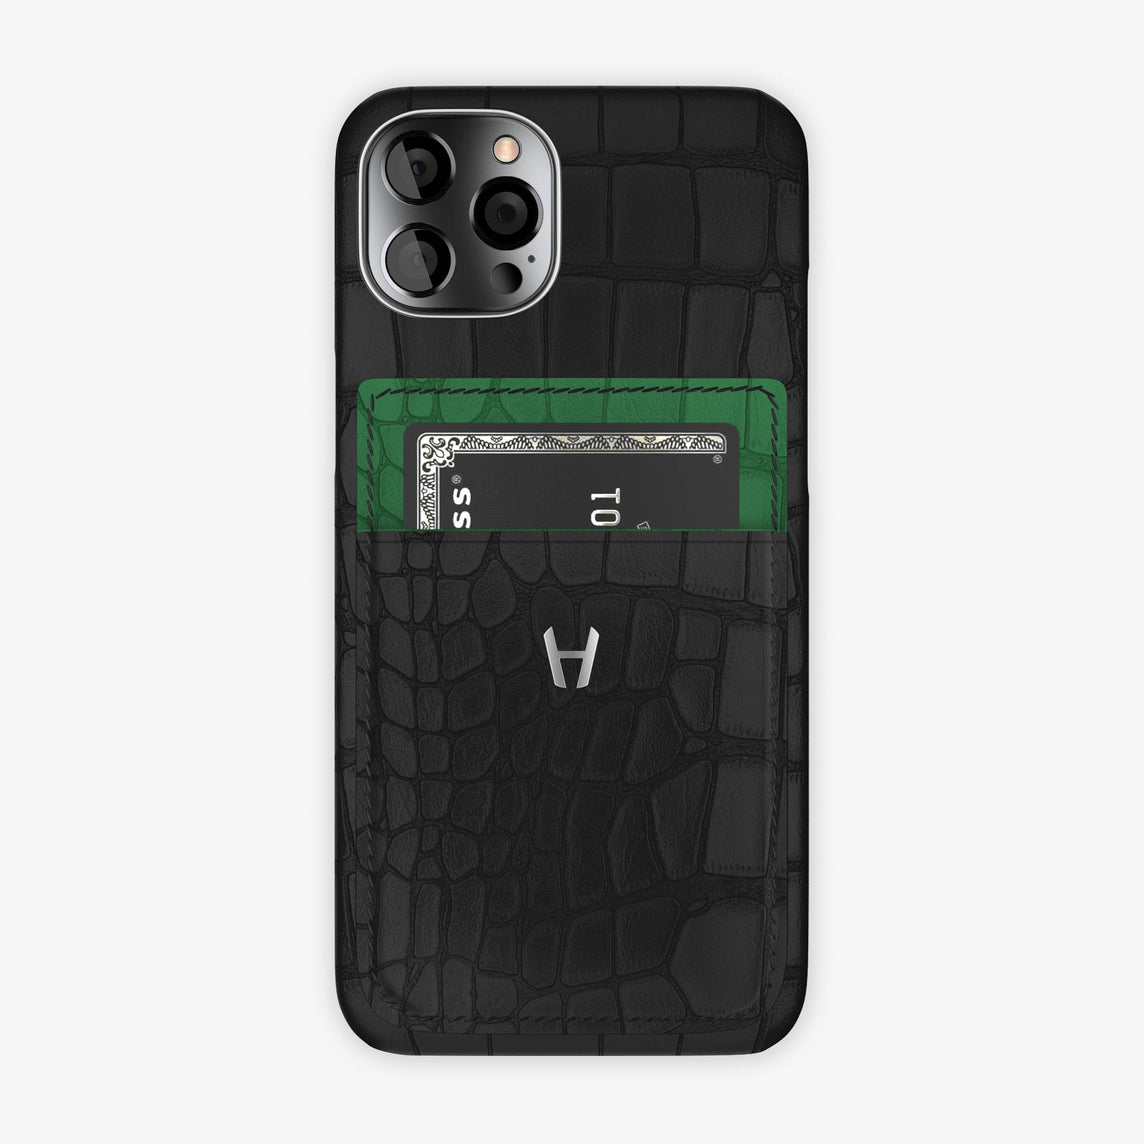 Alligator Pocket Case iPhone  12 & 12 Pro | Black/Green Emerald - Stainless Steel